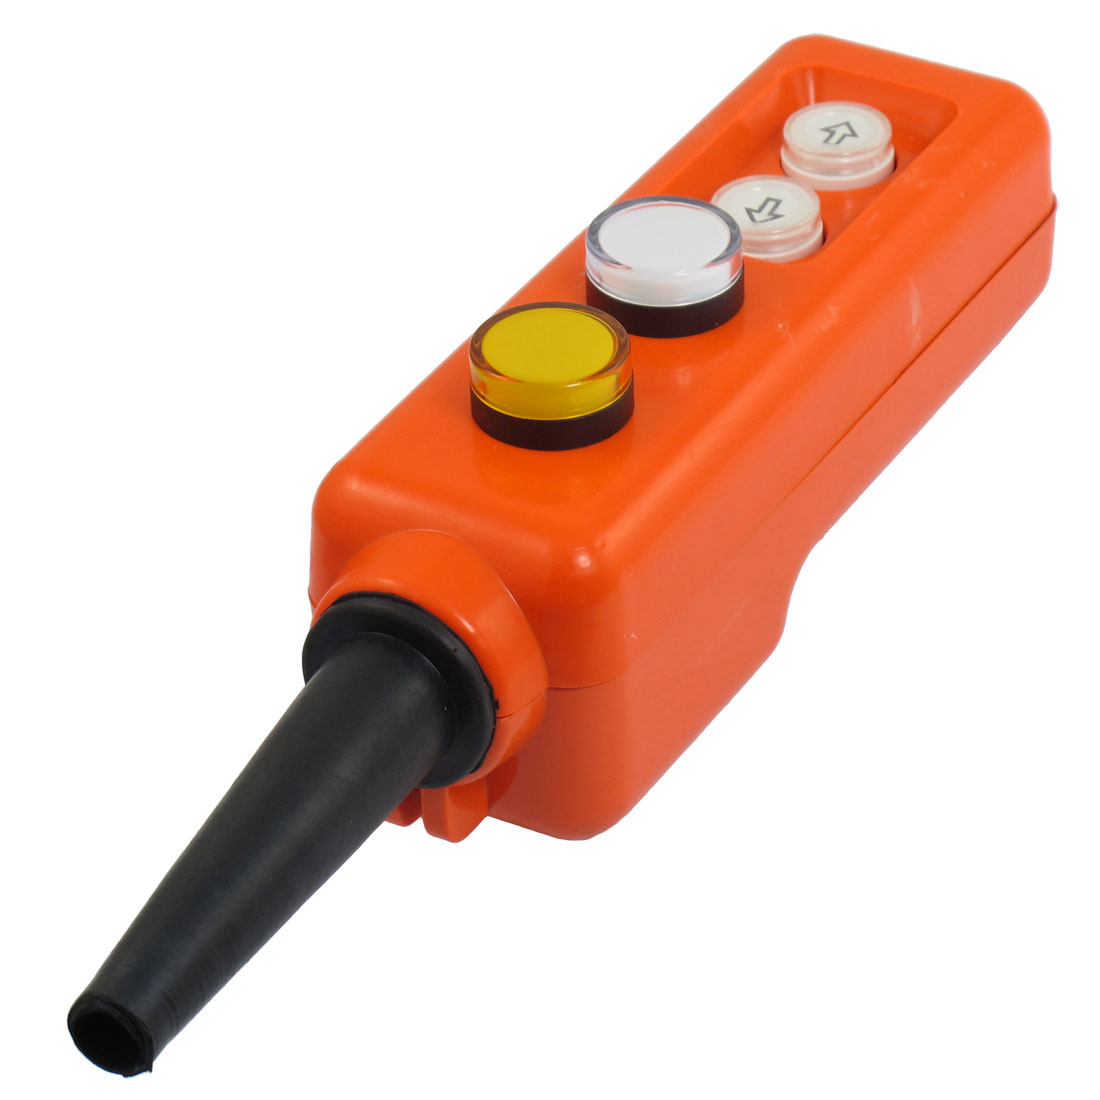 Hoist Yellow White LED Indicator Up Down Hand Operate Push Button Switch AC 220V